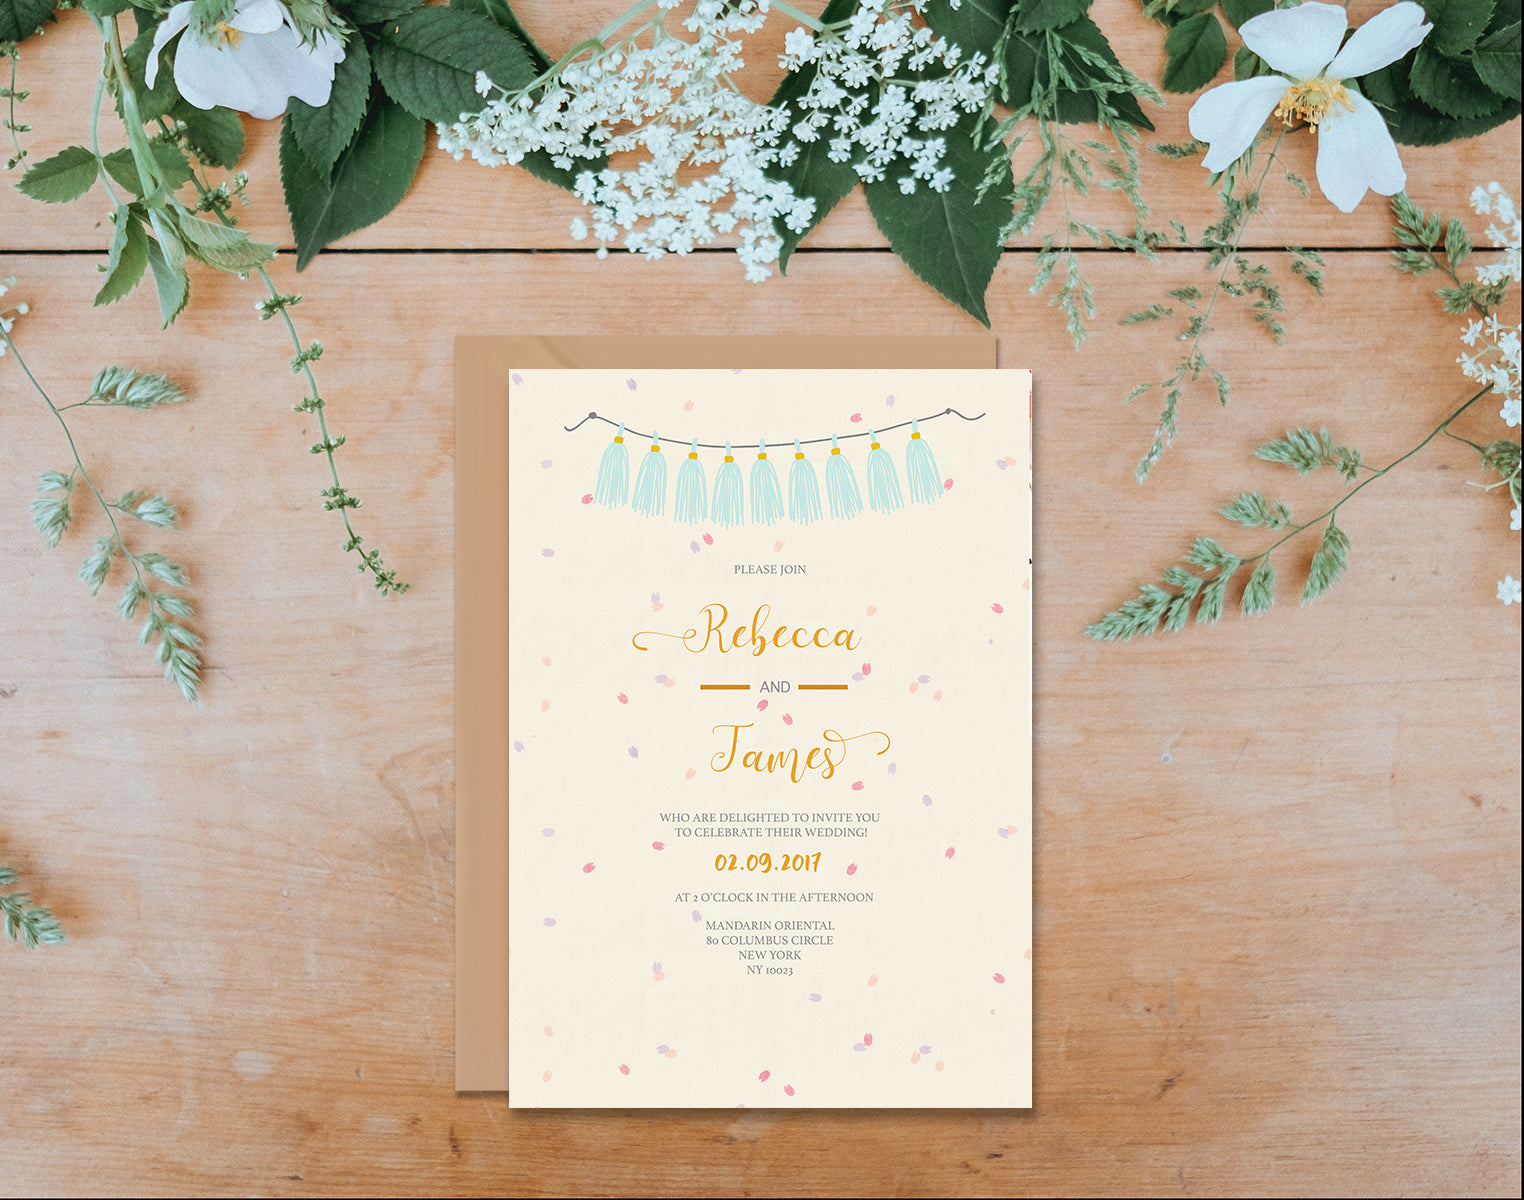 Cream Confetti and Flowers Wedding Invitation-Wedding Stationary-Mode Prints